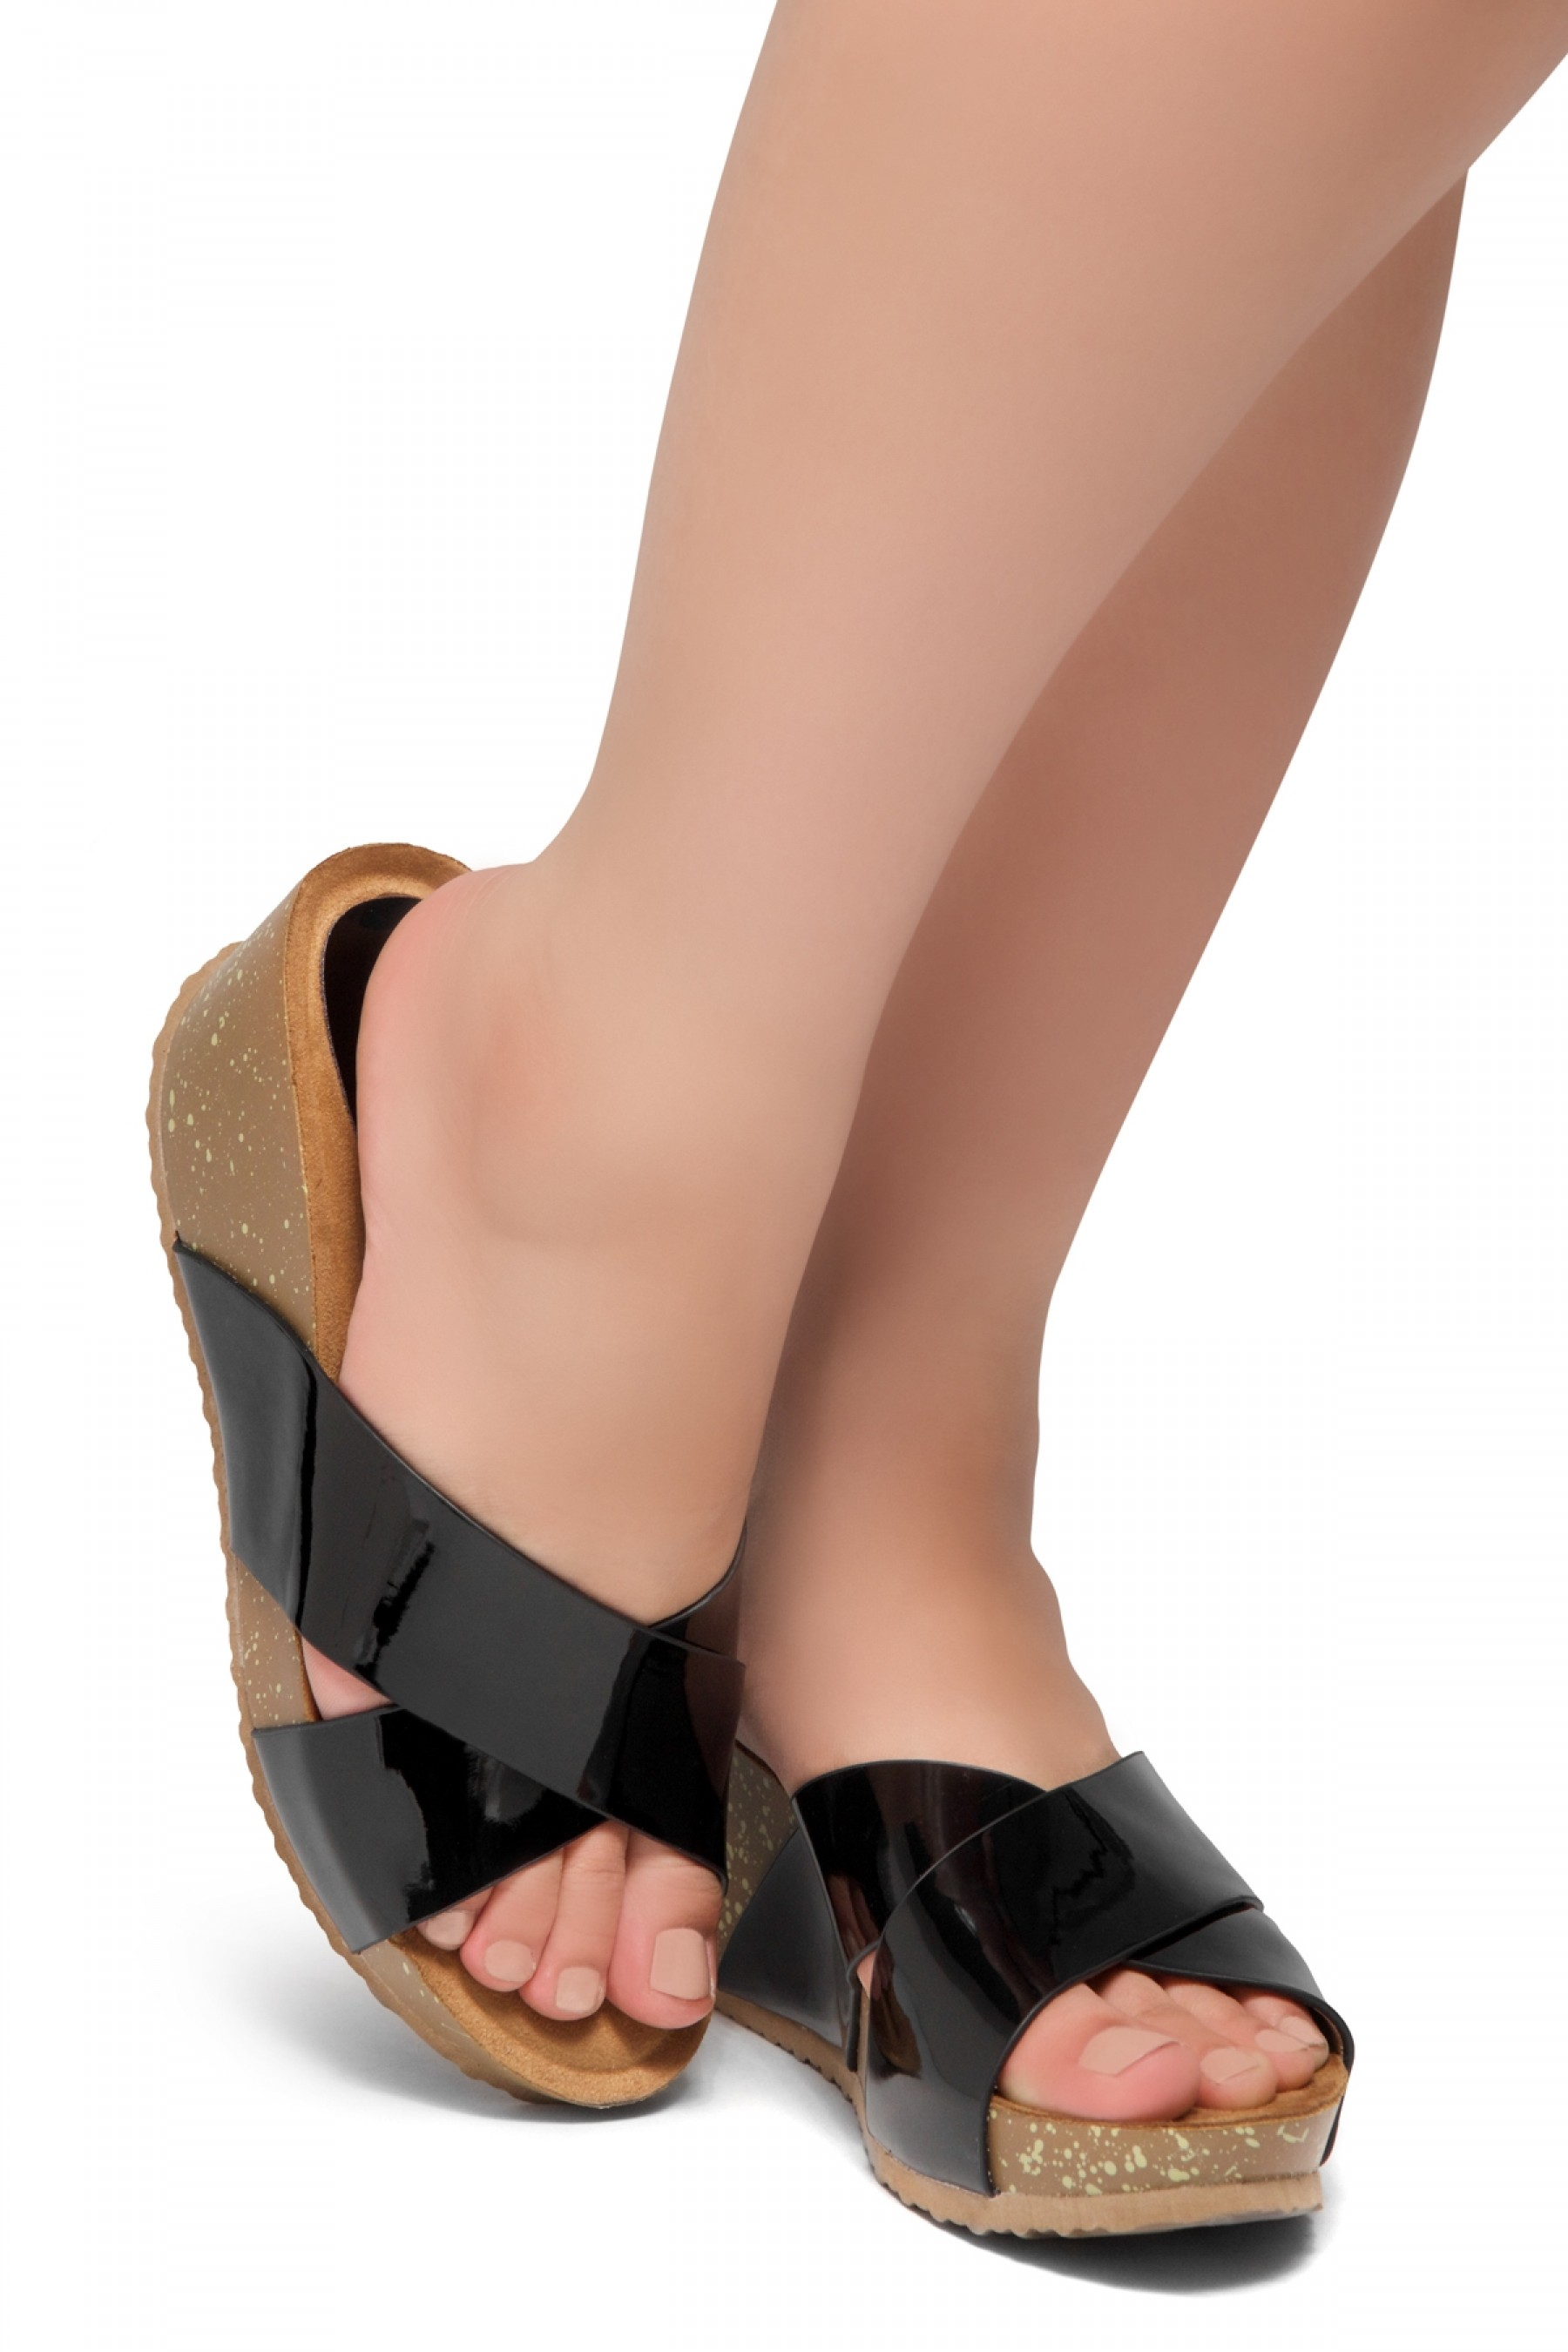 HerStyle Timmy -Crisscross Wide Straps Vamp Open Toe Slide Wedge Sandals (Black PT)